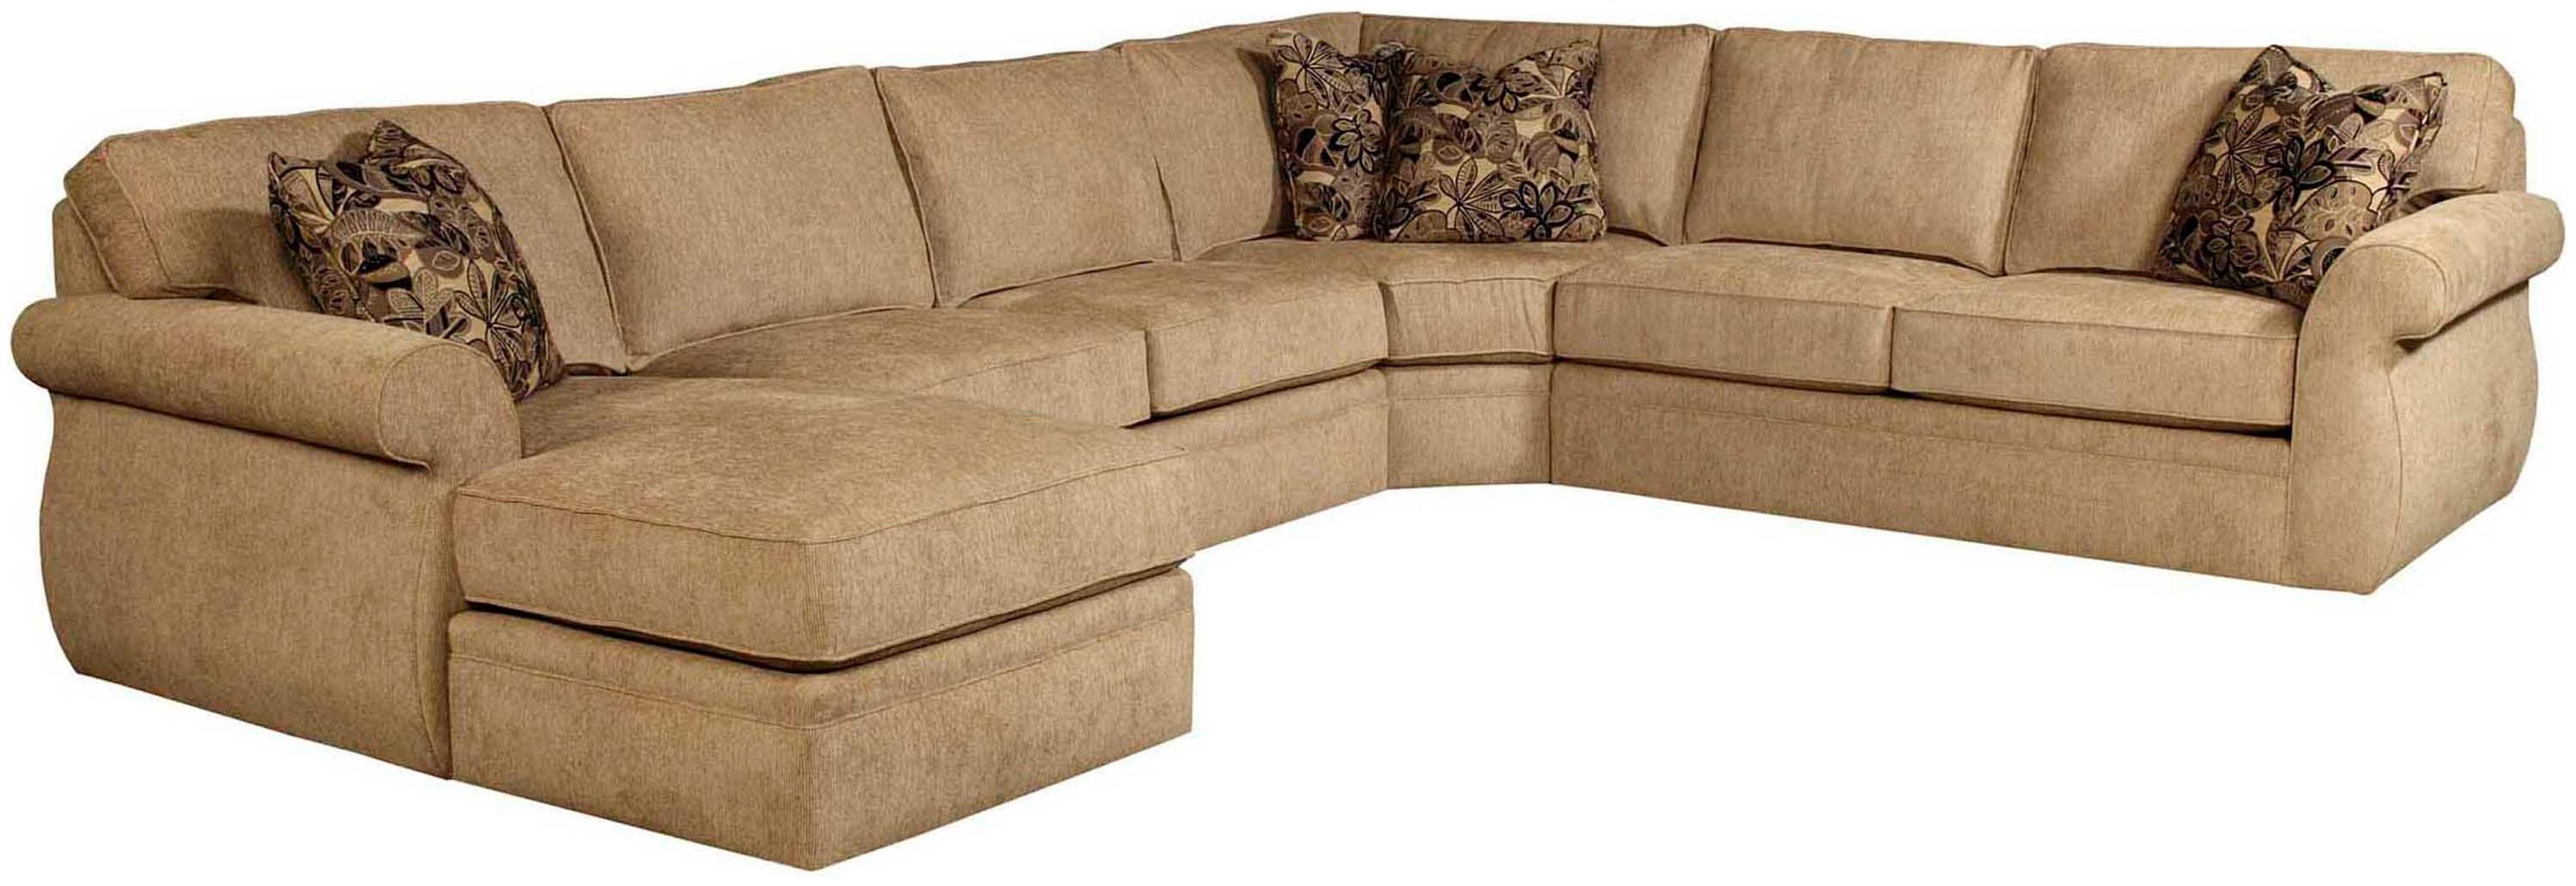 20 Best Collection Of Long Sectional Sofa With Chaise